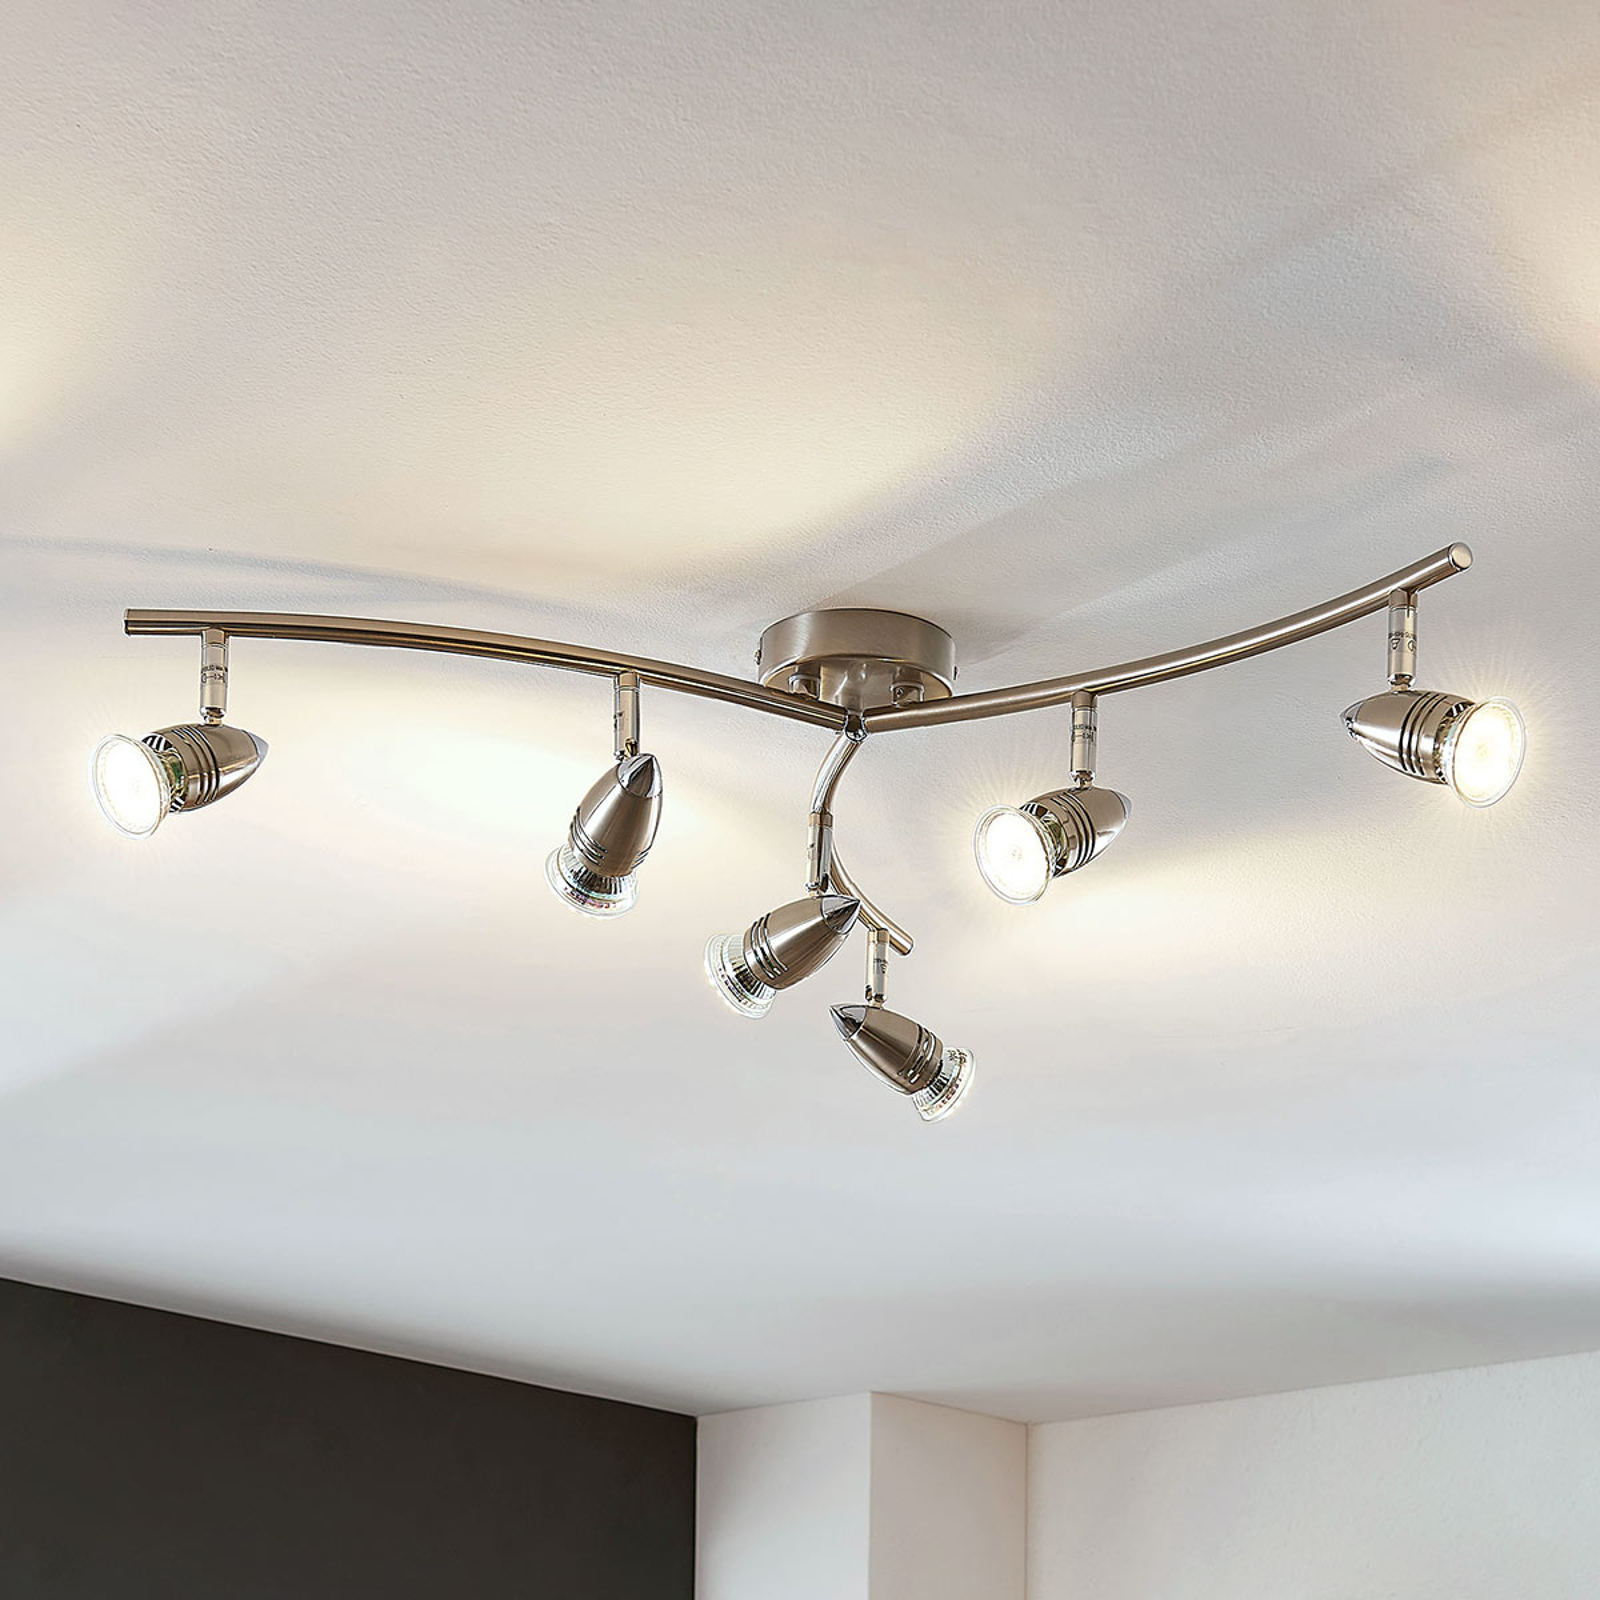 Faretto da soffitto LED Benina a 6 luci